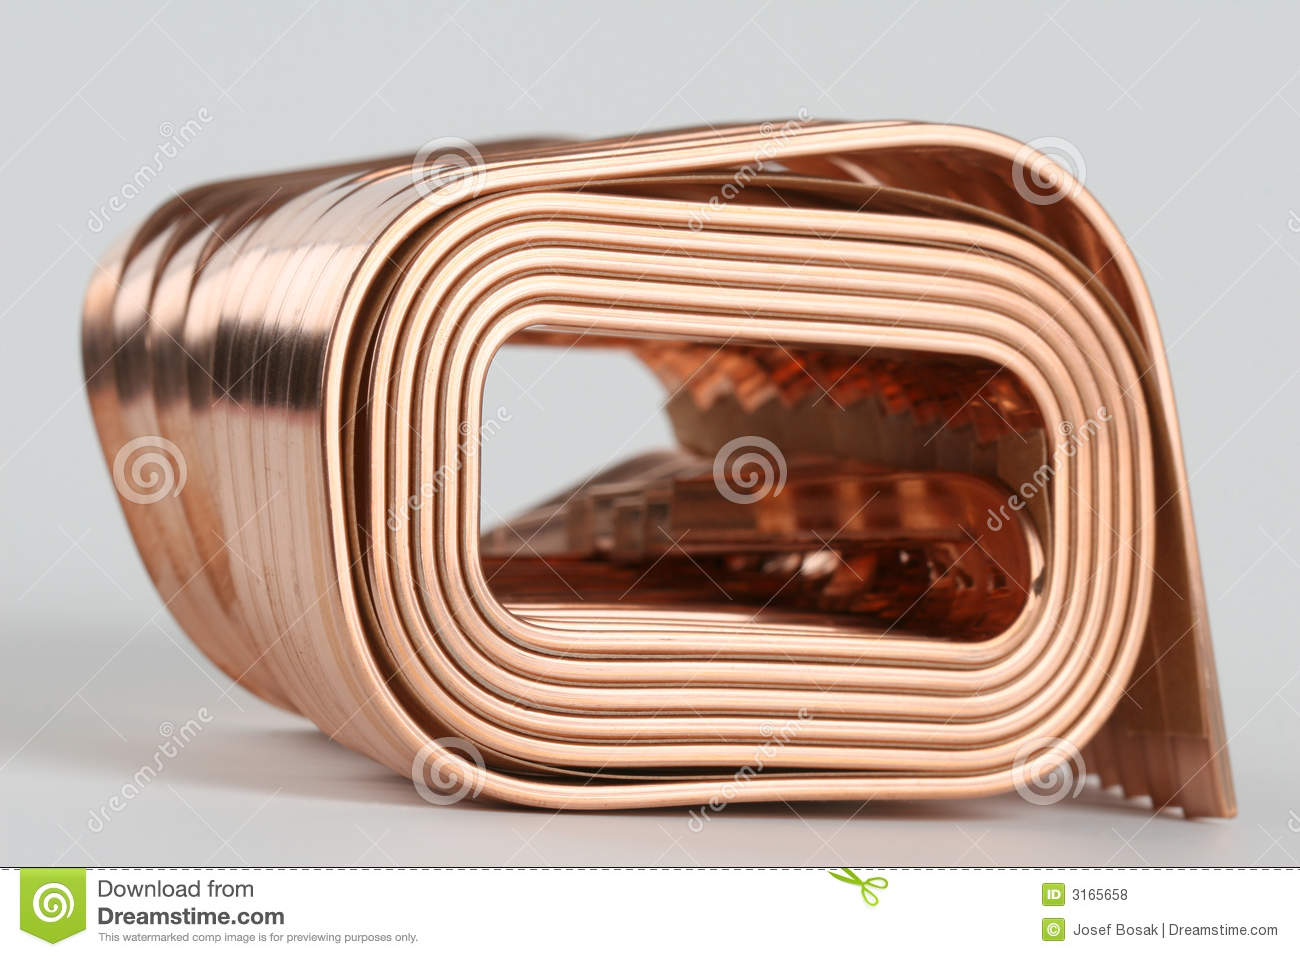 how to make a copper coil